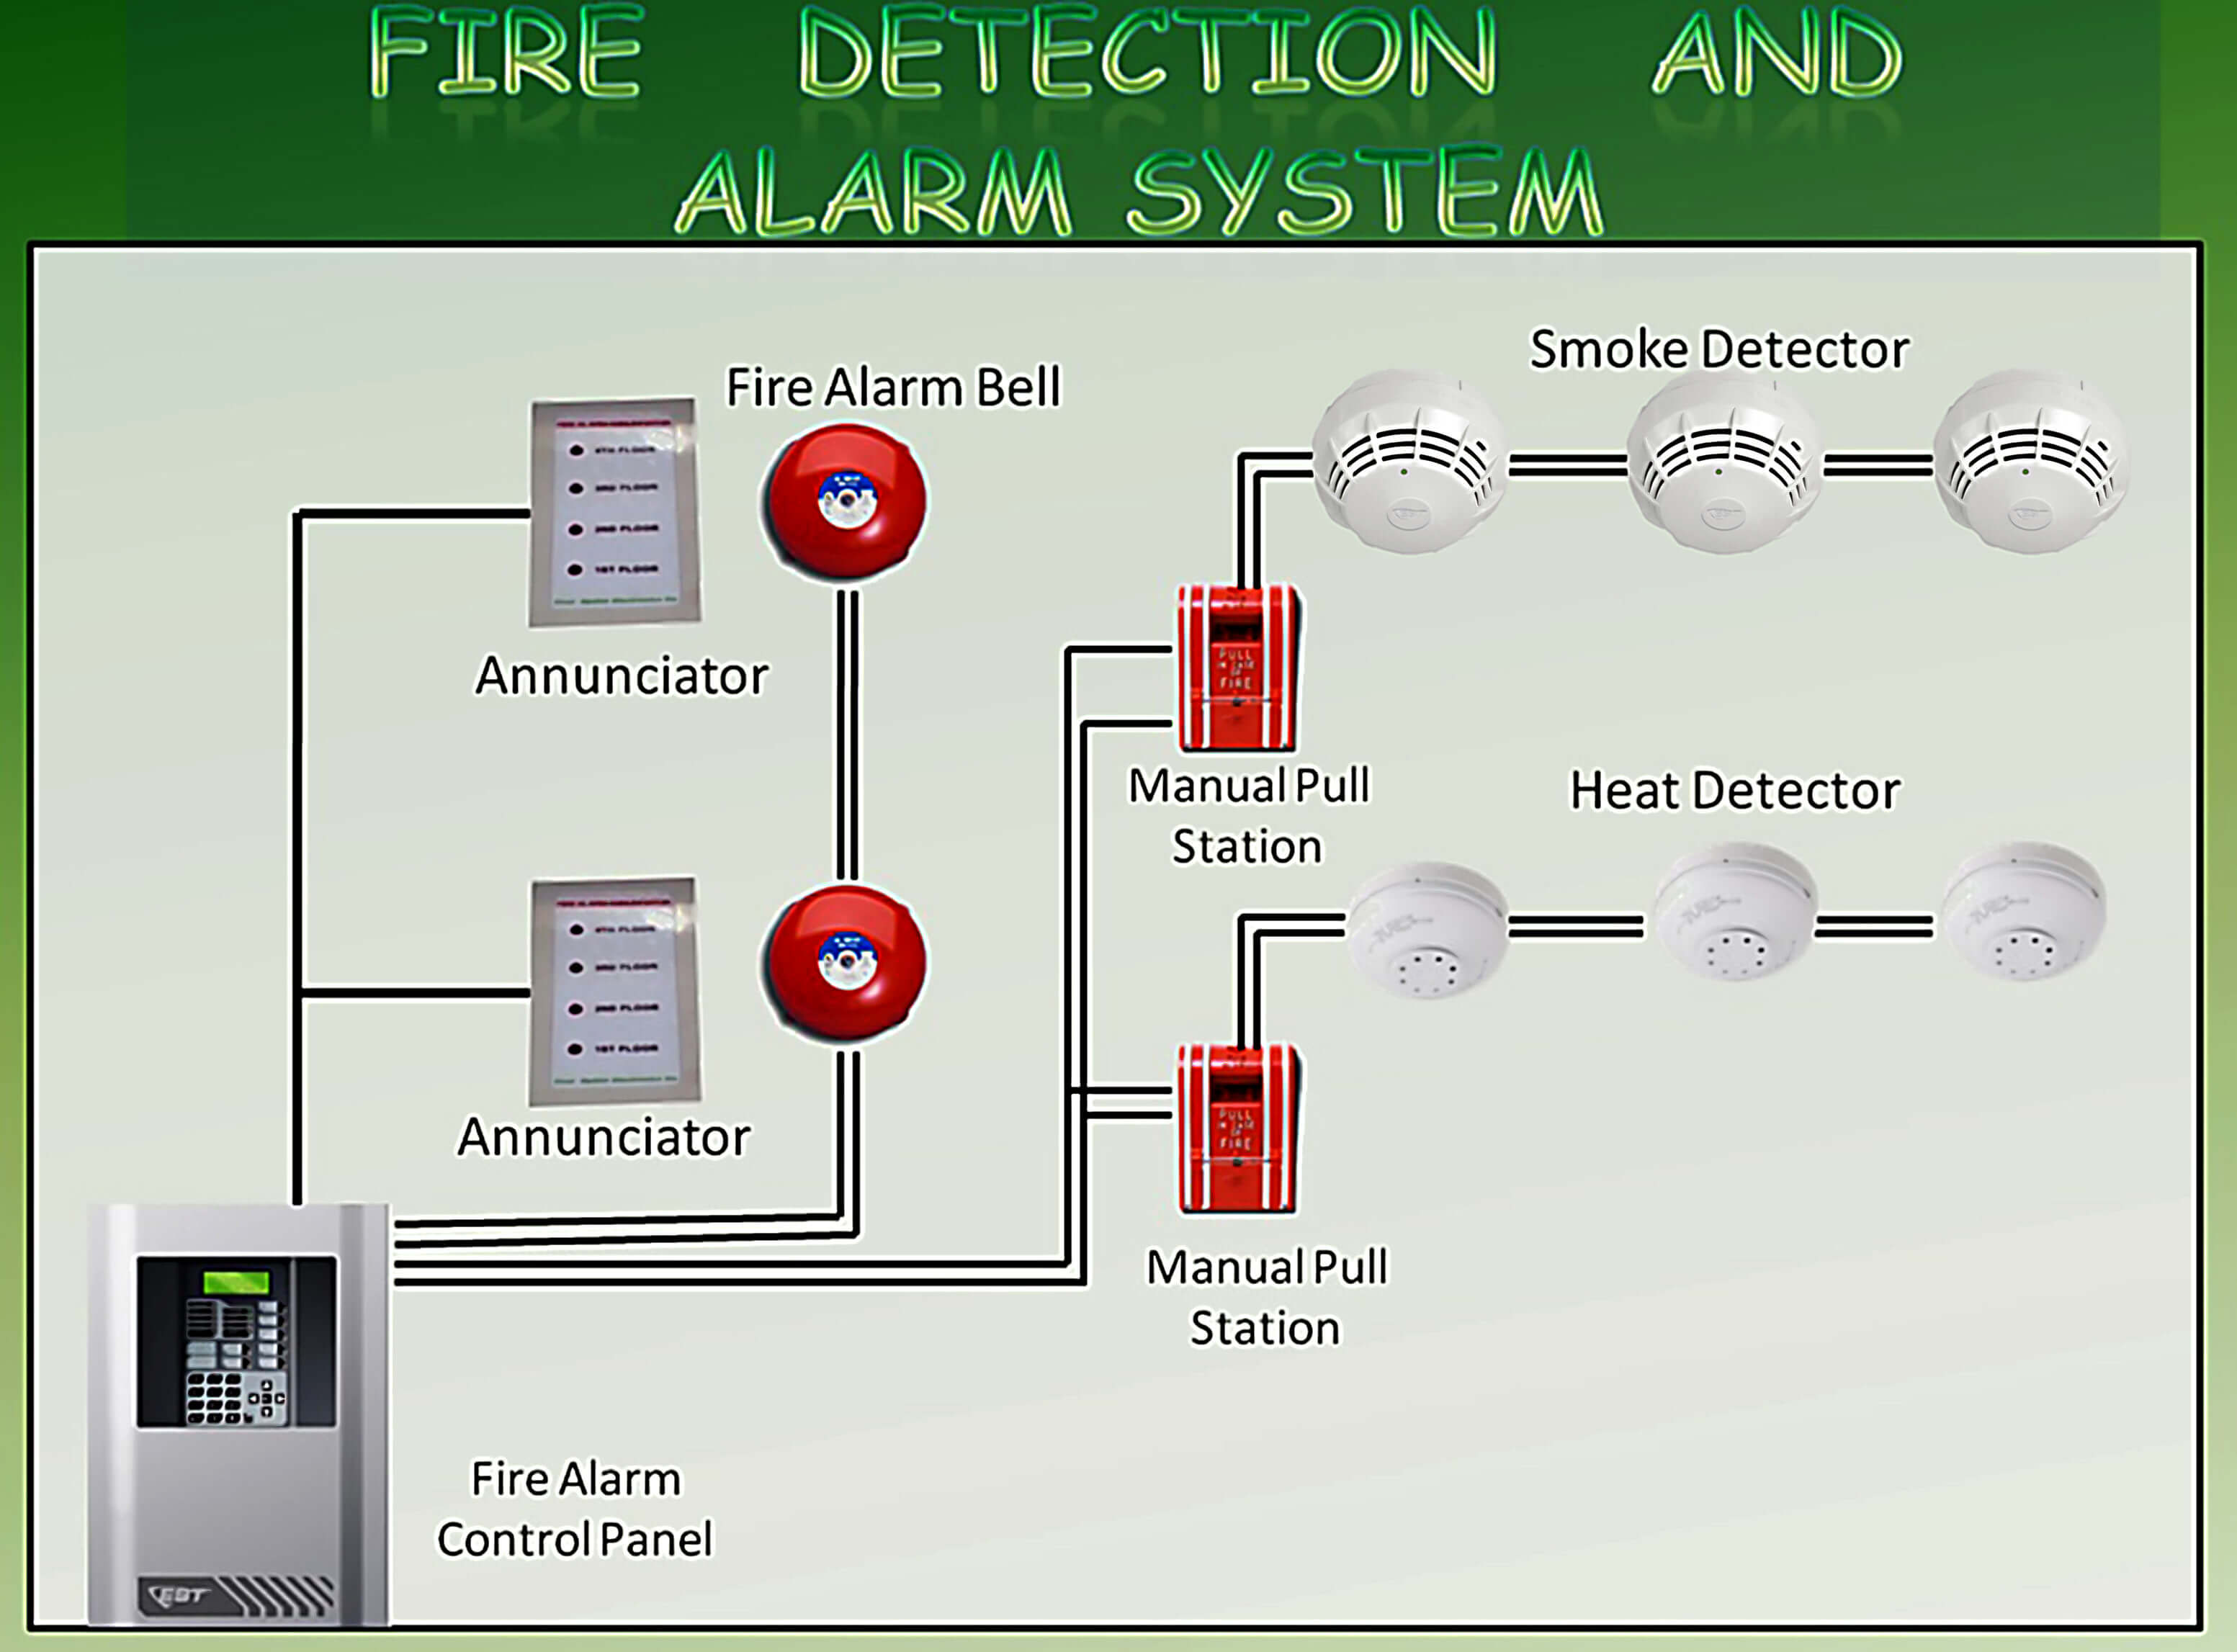 Objectives Draw A Riser Diagram C A Fire Alarm System Plan View C Or A Schematic Fire Alarm System Diagram For A System together with Access Control Door Wiring together with Img likewise Pad in addition . on fire alarm system schematic diagram